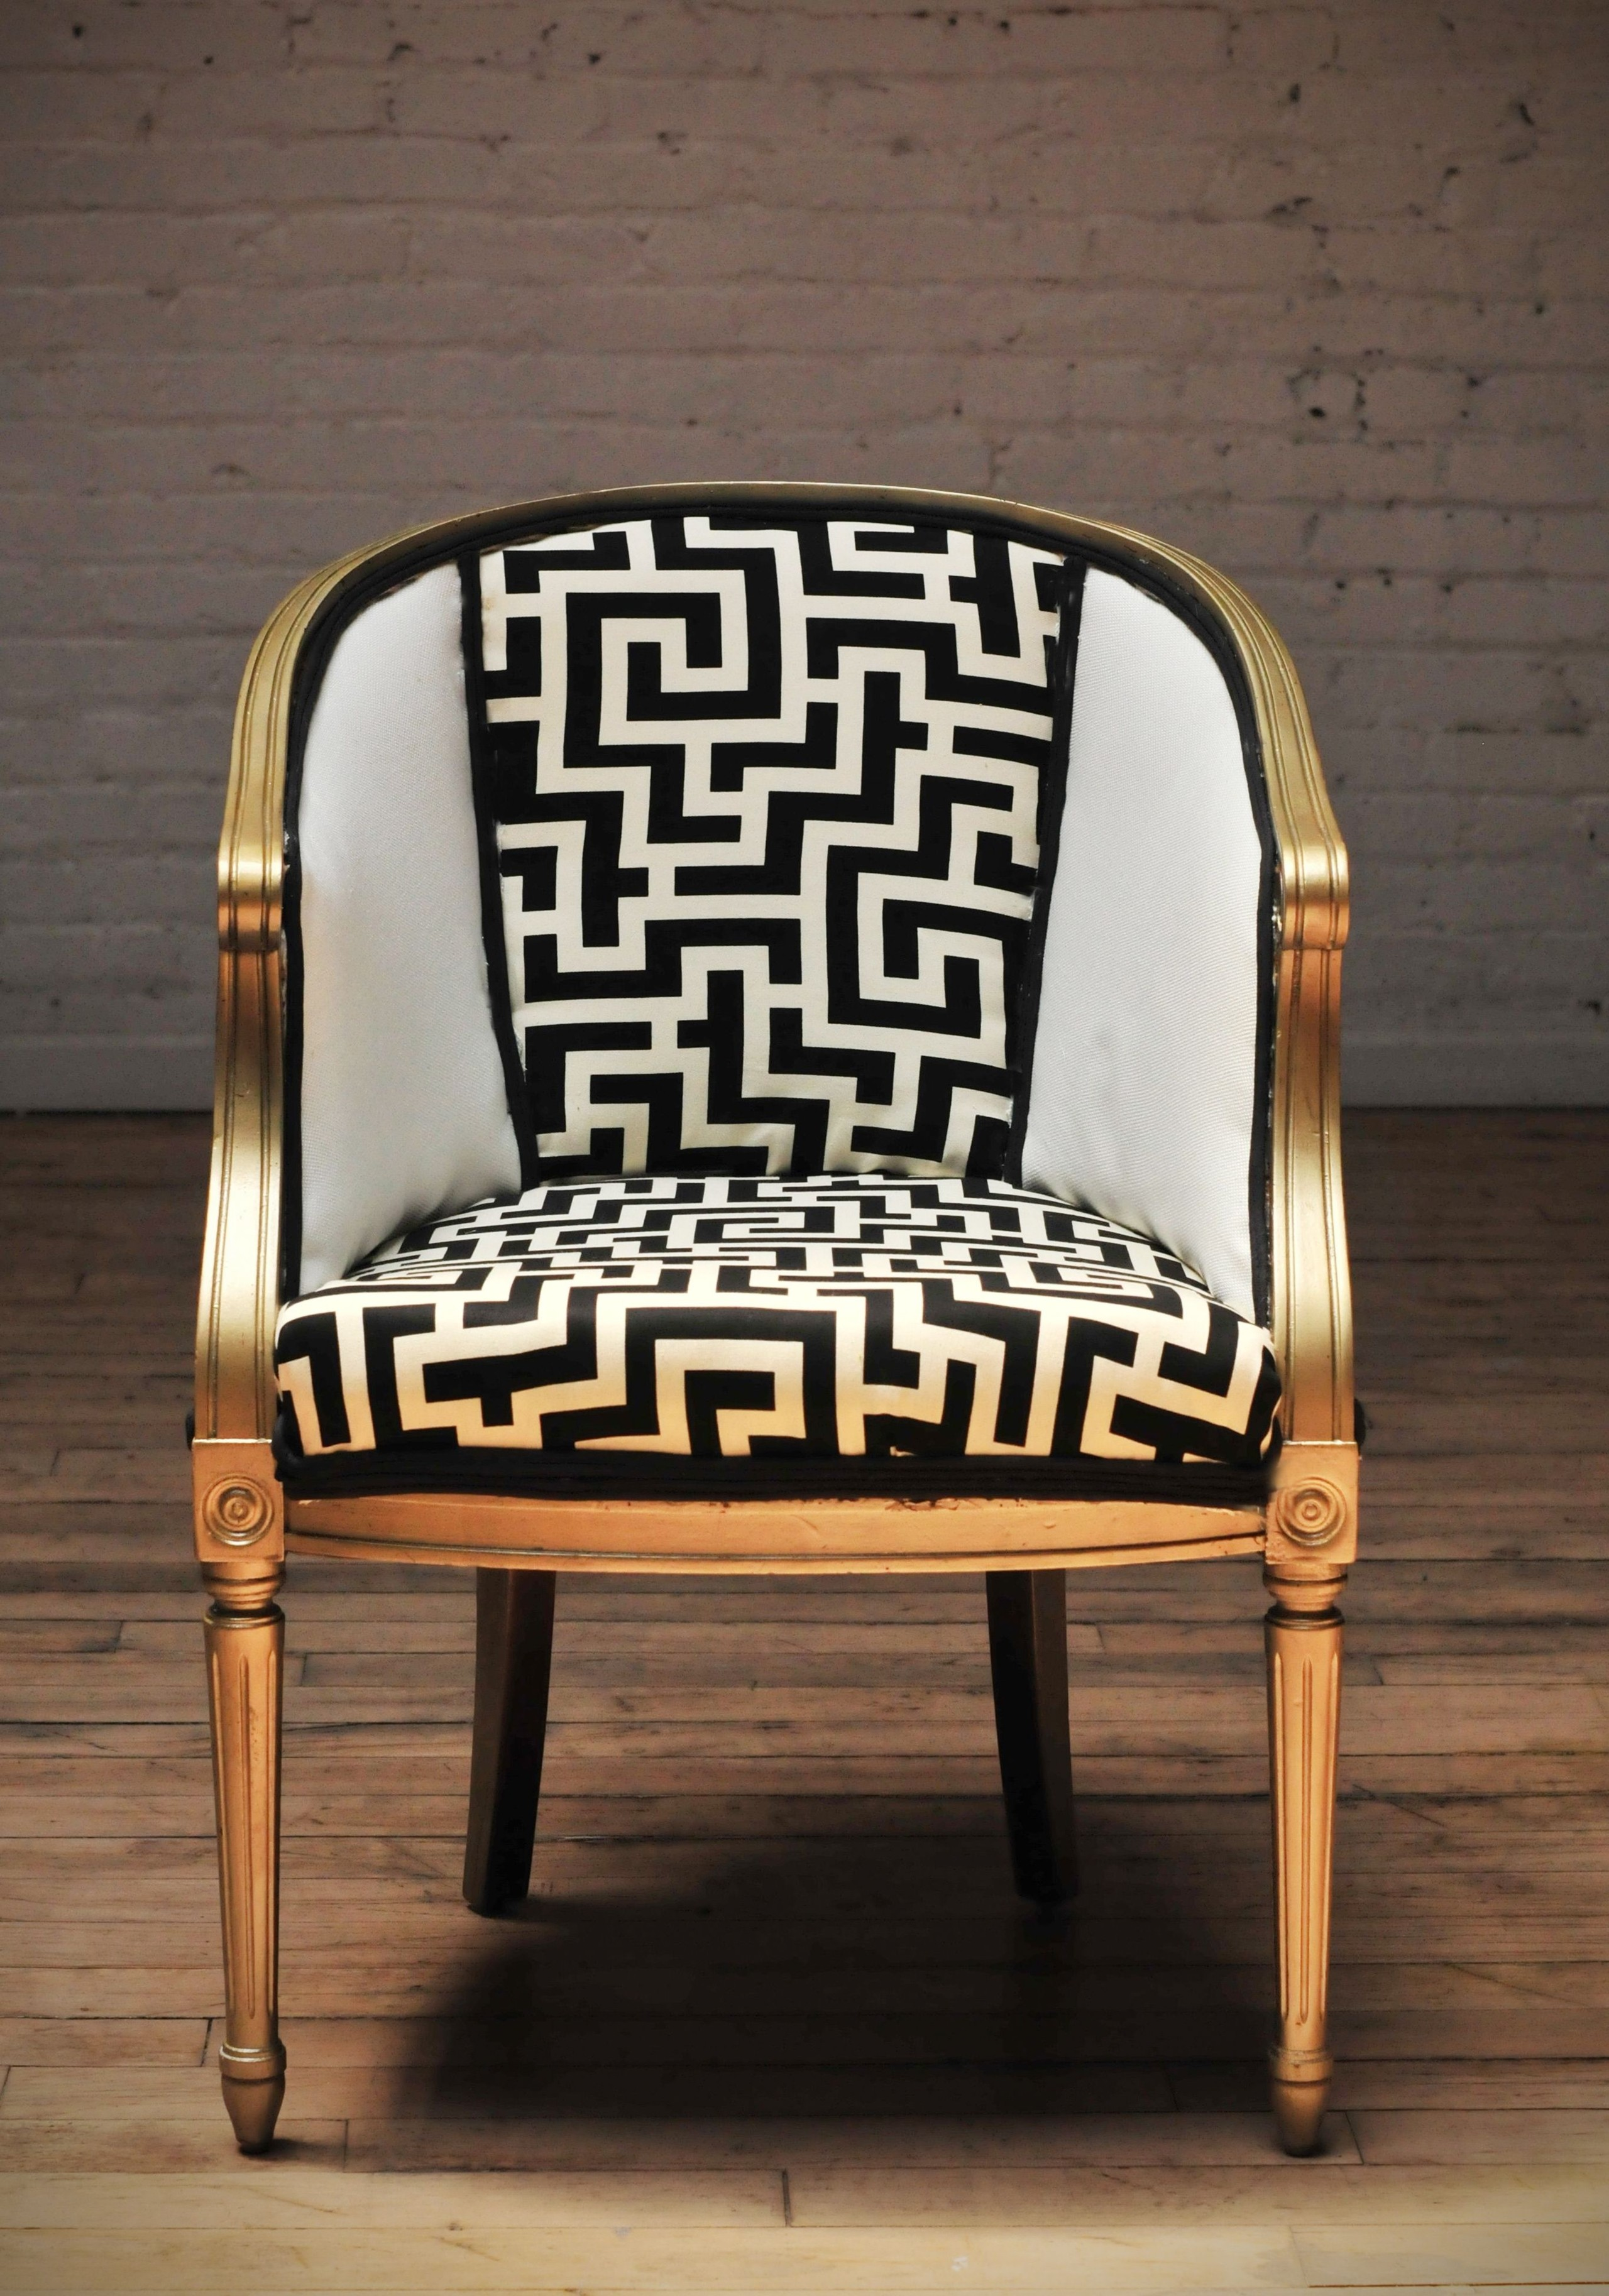 Genial Vintage Upholstered Chairs 5